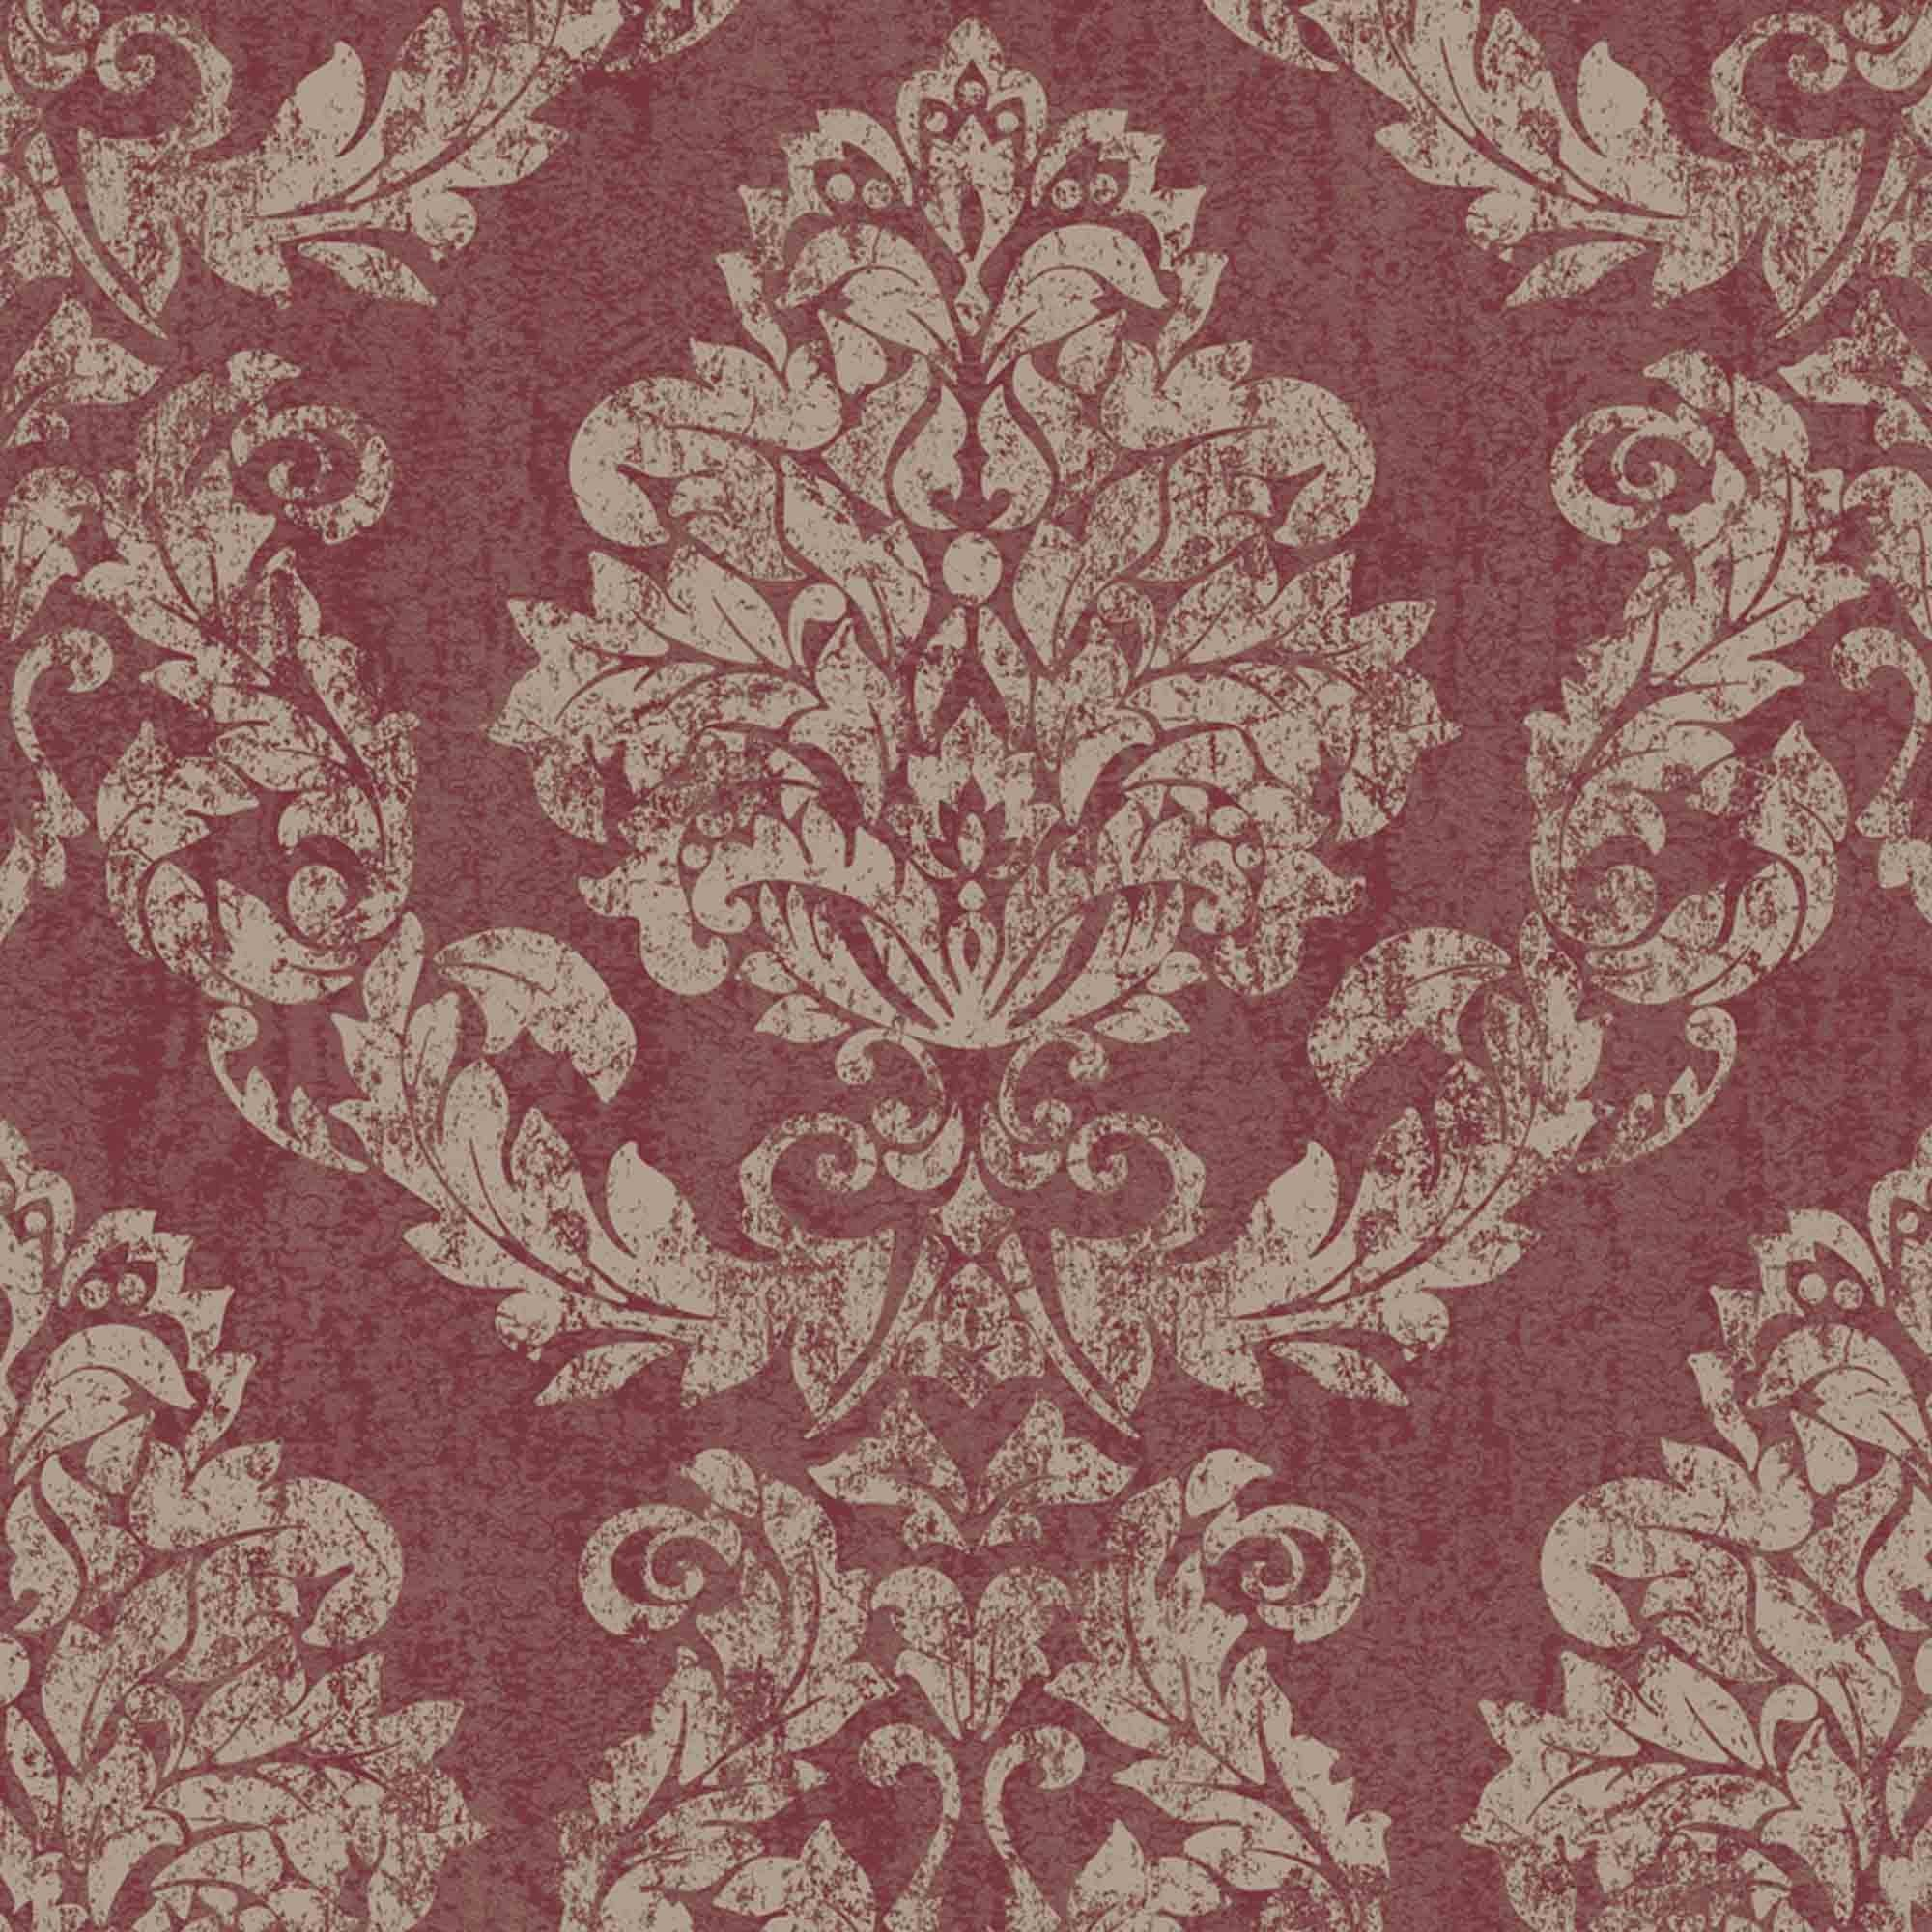 Red And Gold Wallpaper Designs Home